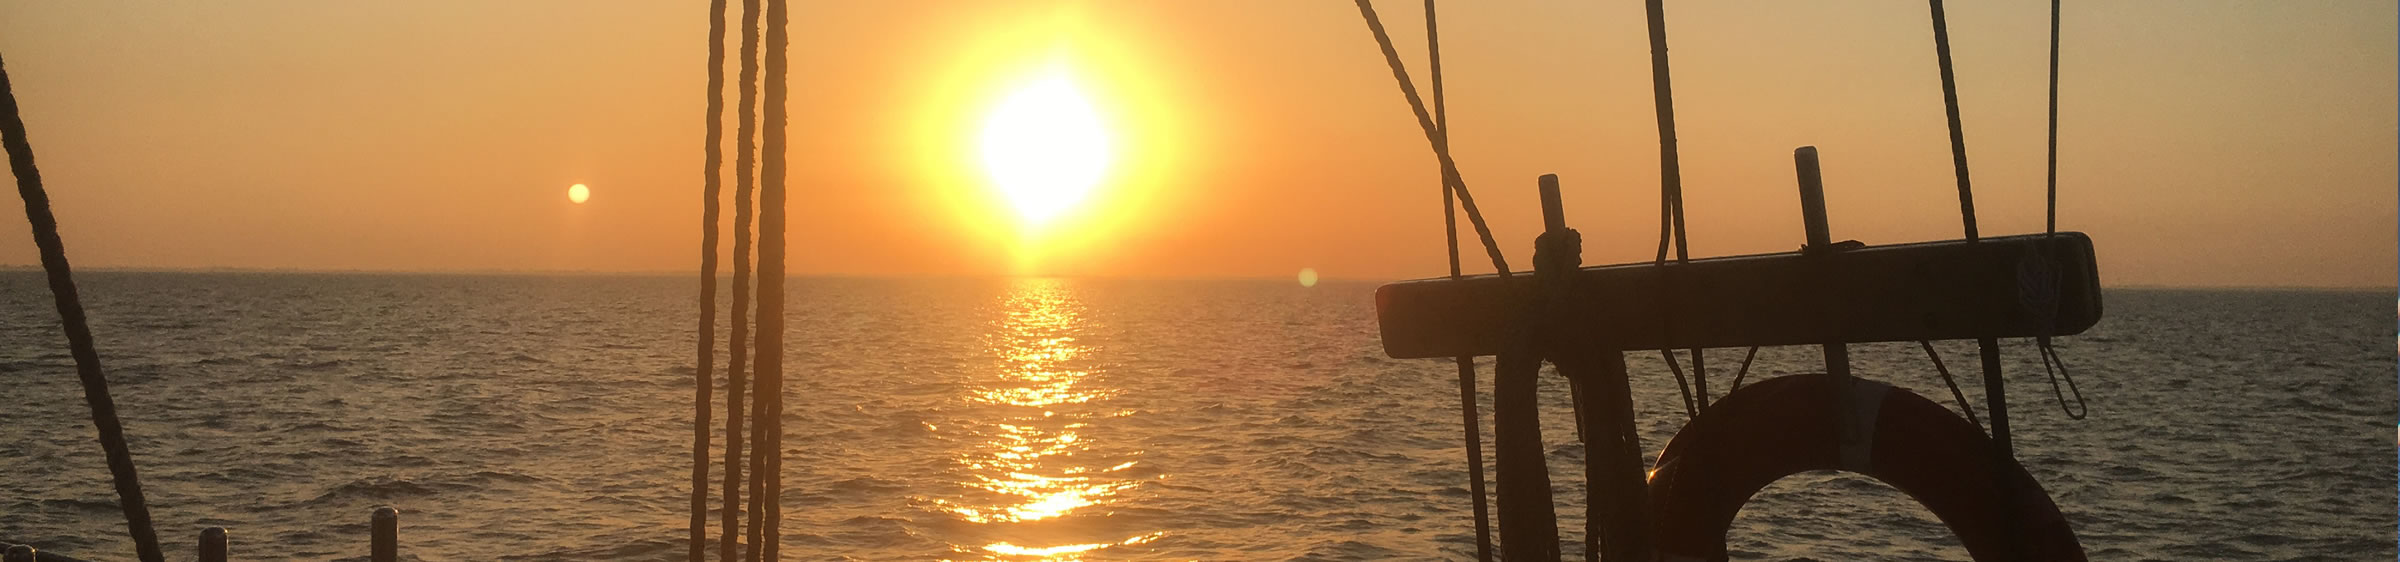 Evening cruise All Inclusive with sunset